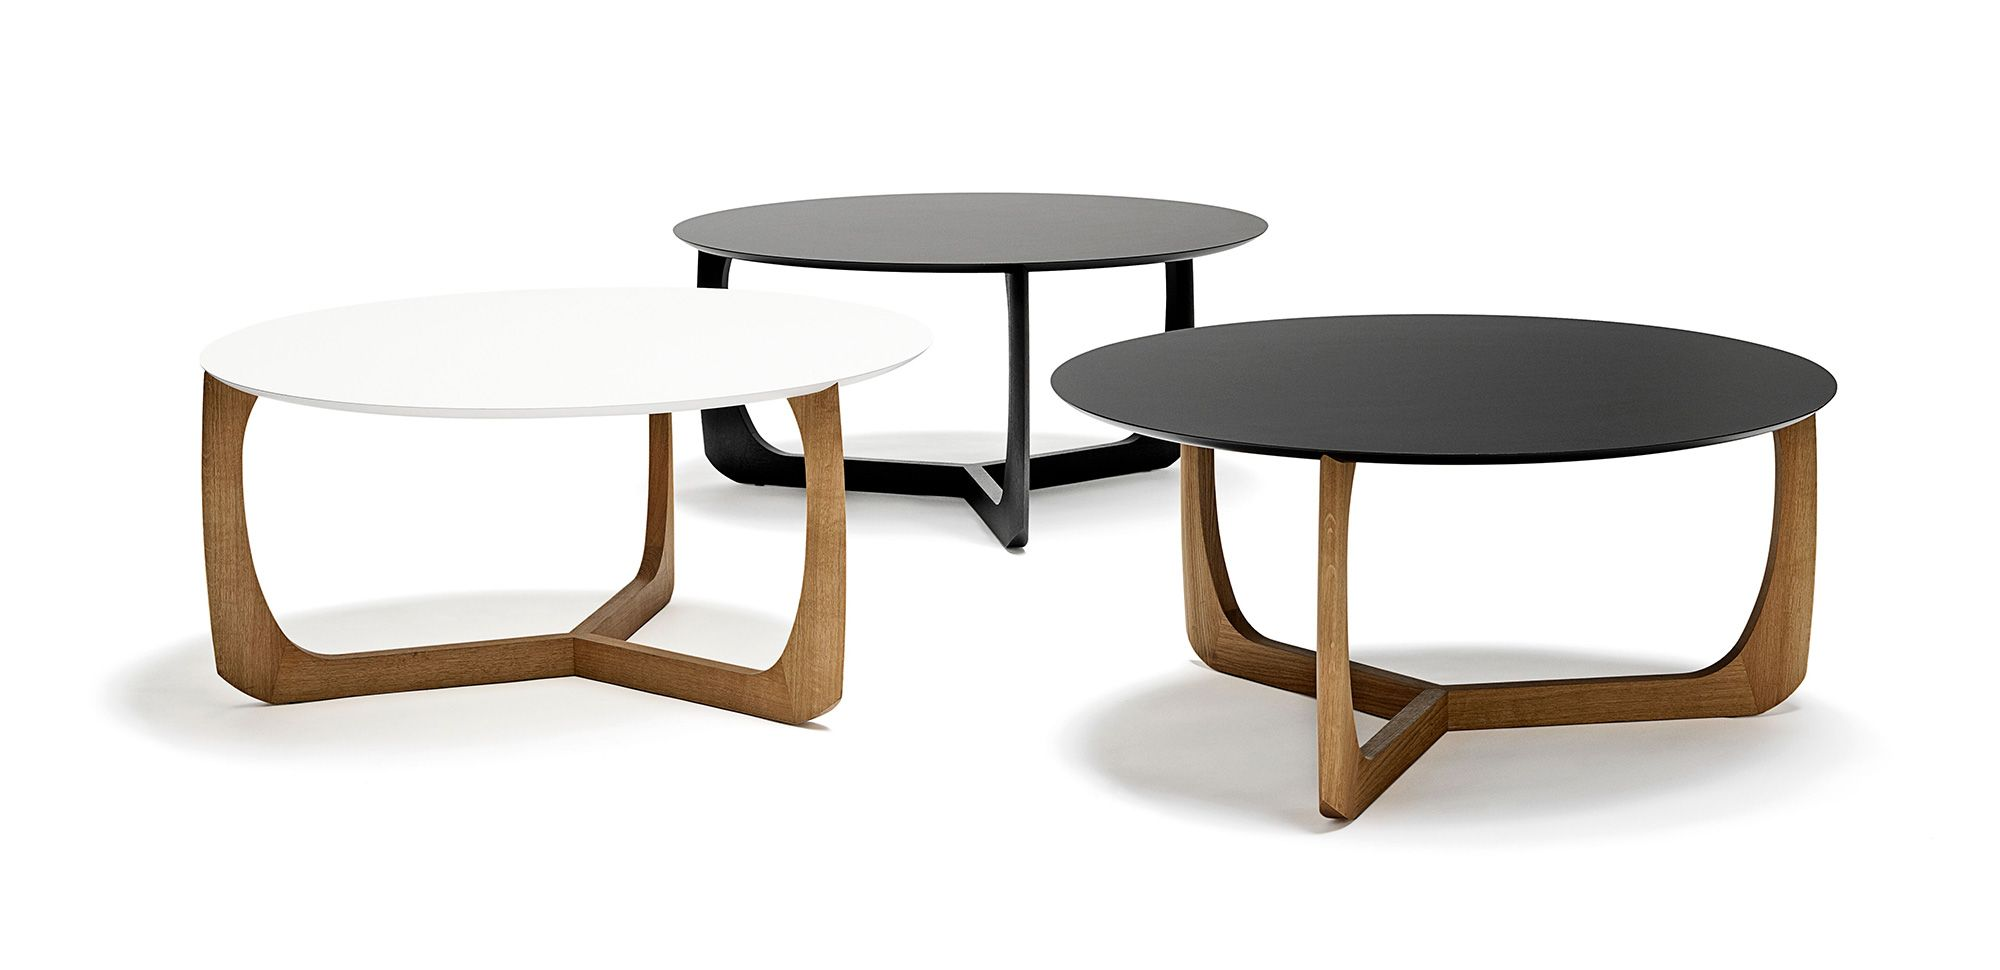 Table Basse Ronde Salon Petites Tables Basses Gigognes Maison